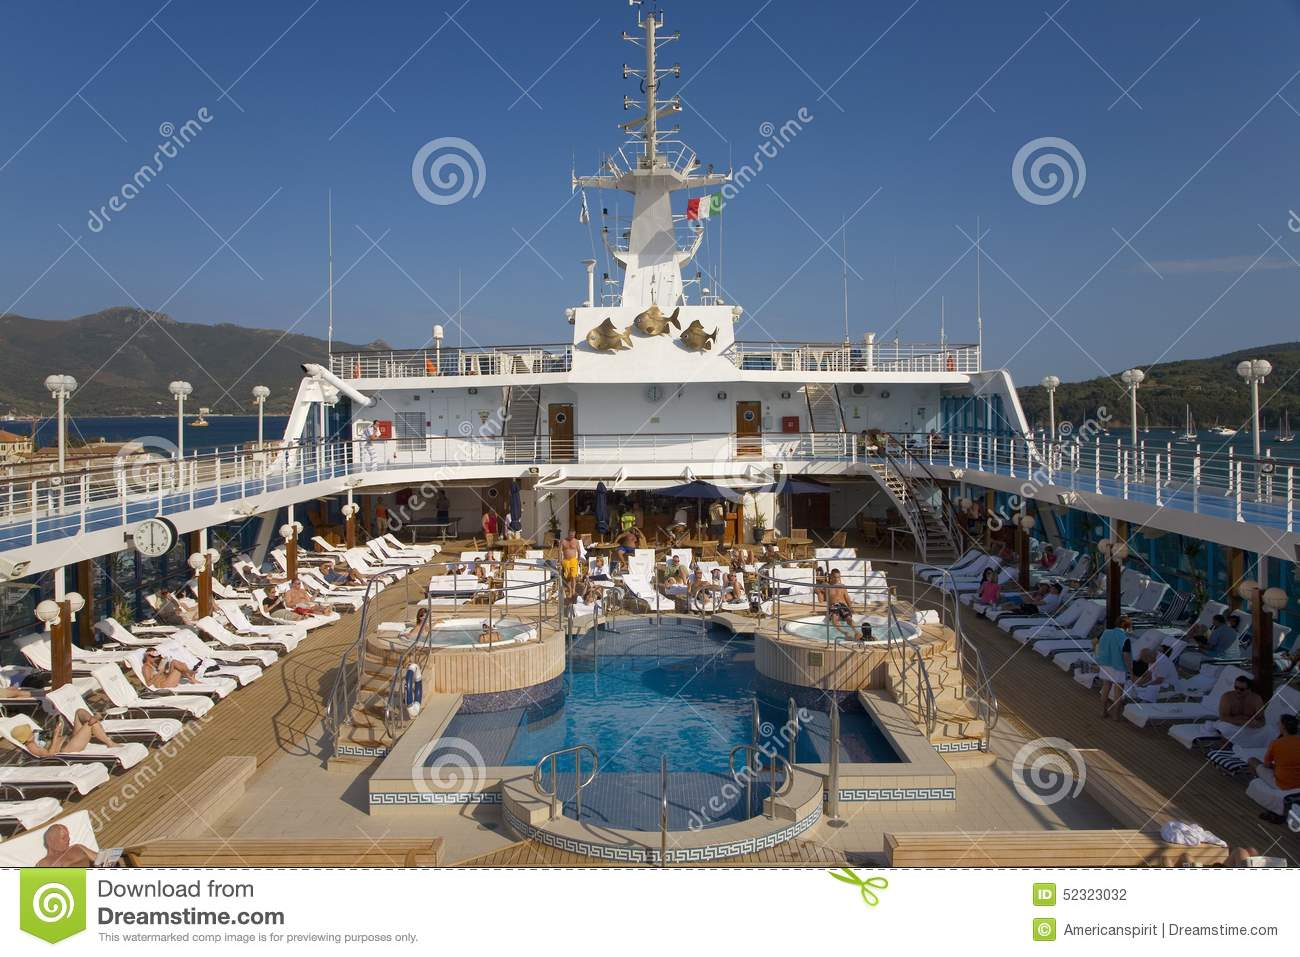 Upper deck swimming pool of insignia oceania cruise ship as it cruise deck baanklon Gallery